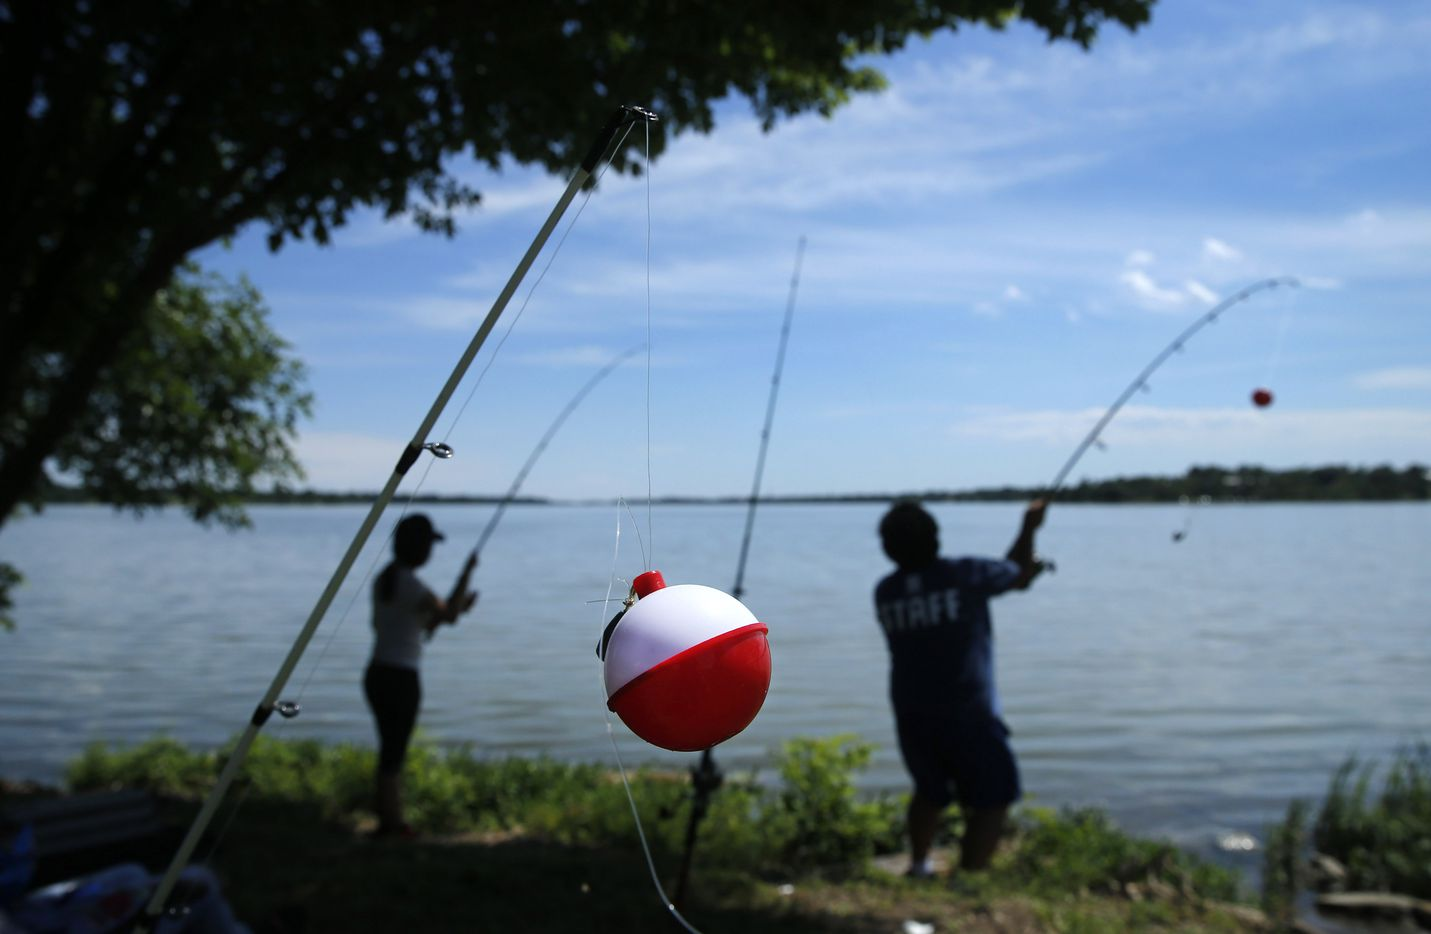 Oscar Resendiz of Dallas casts his line at White Rock Lake in Dallas as he fishes with his daughter Aleva DeLeon.